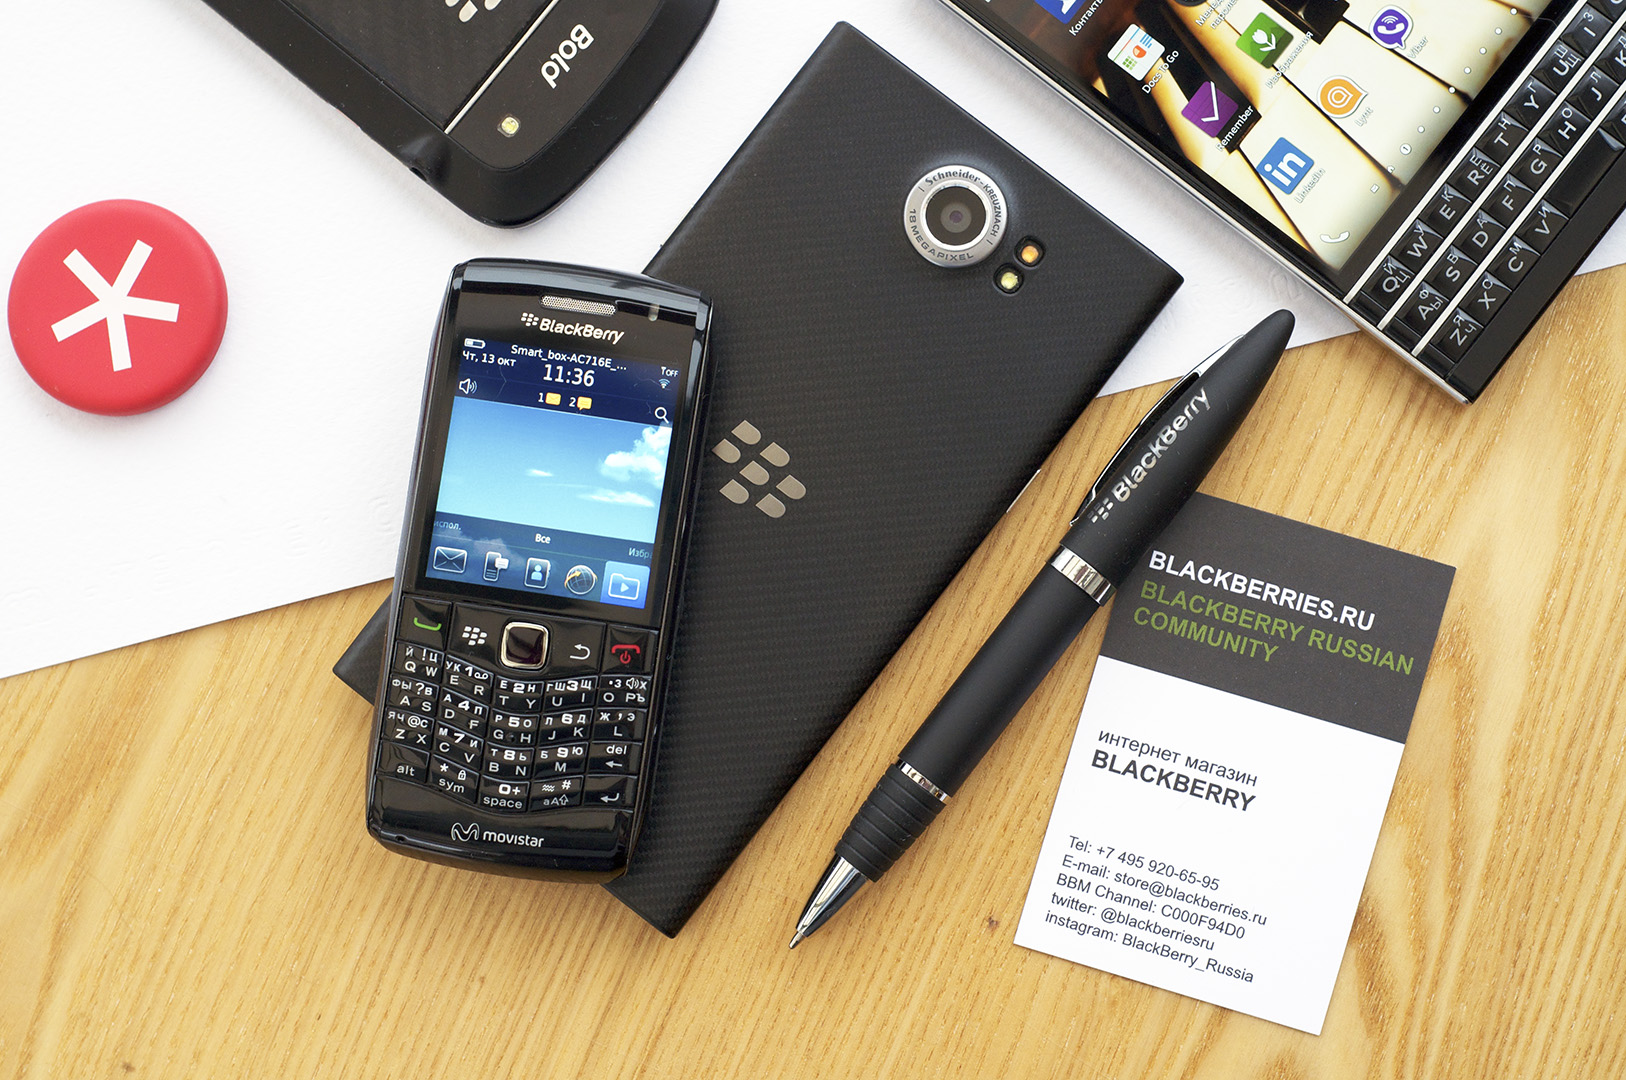 blackberry-9100-pearl-3g-27